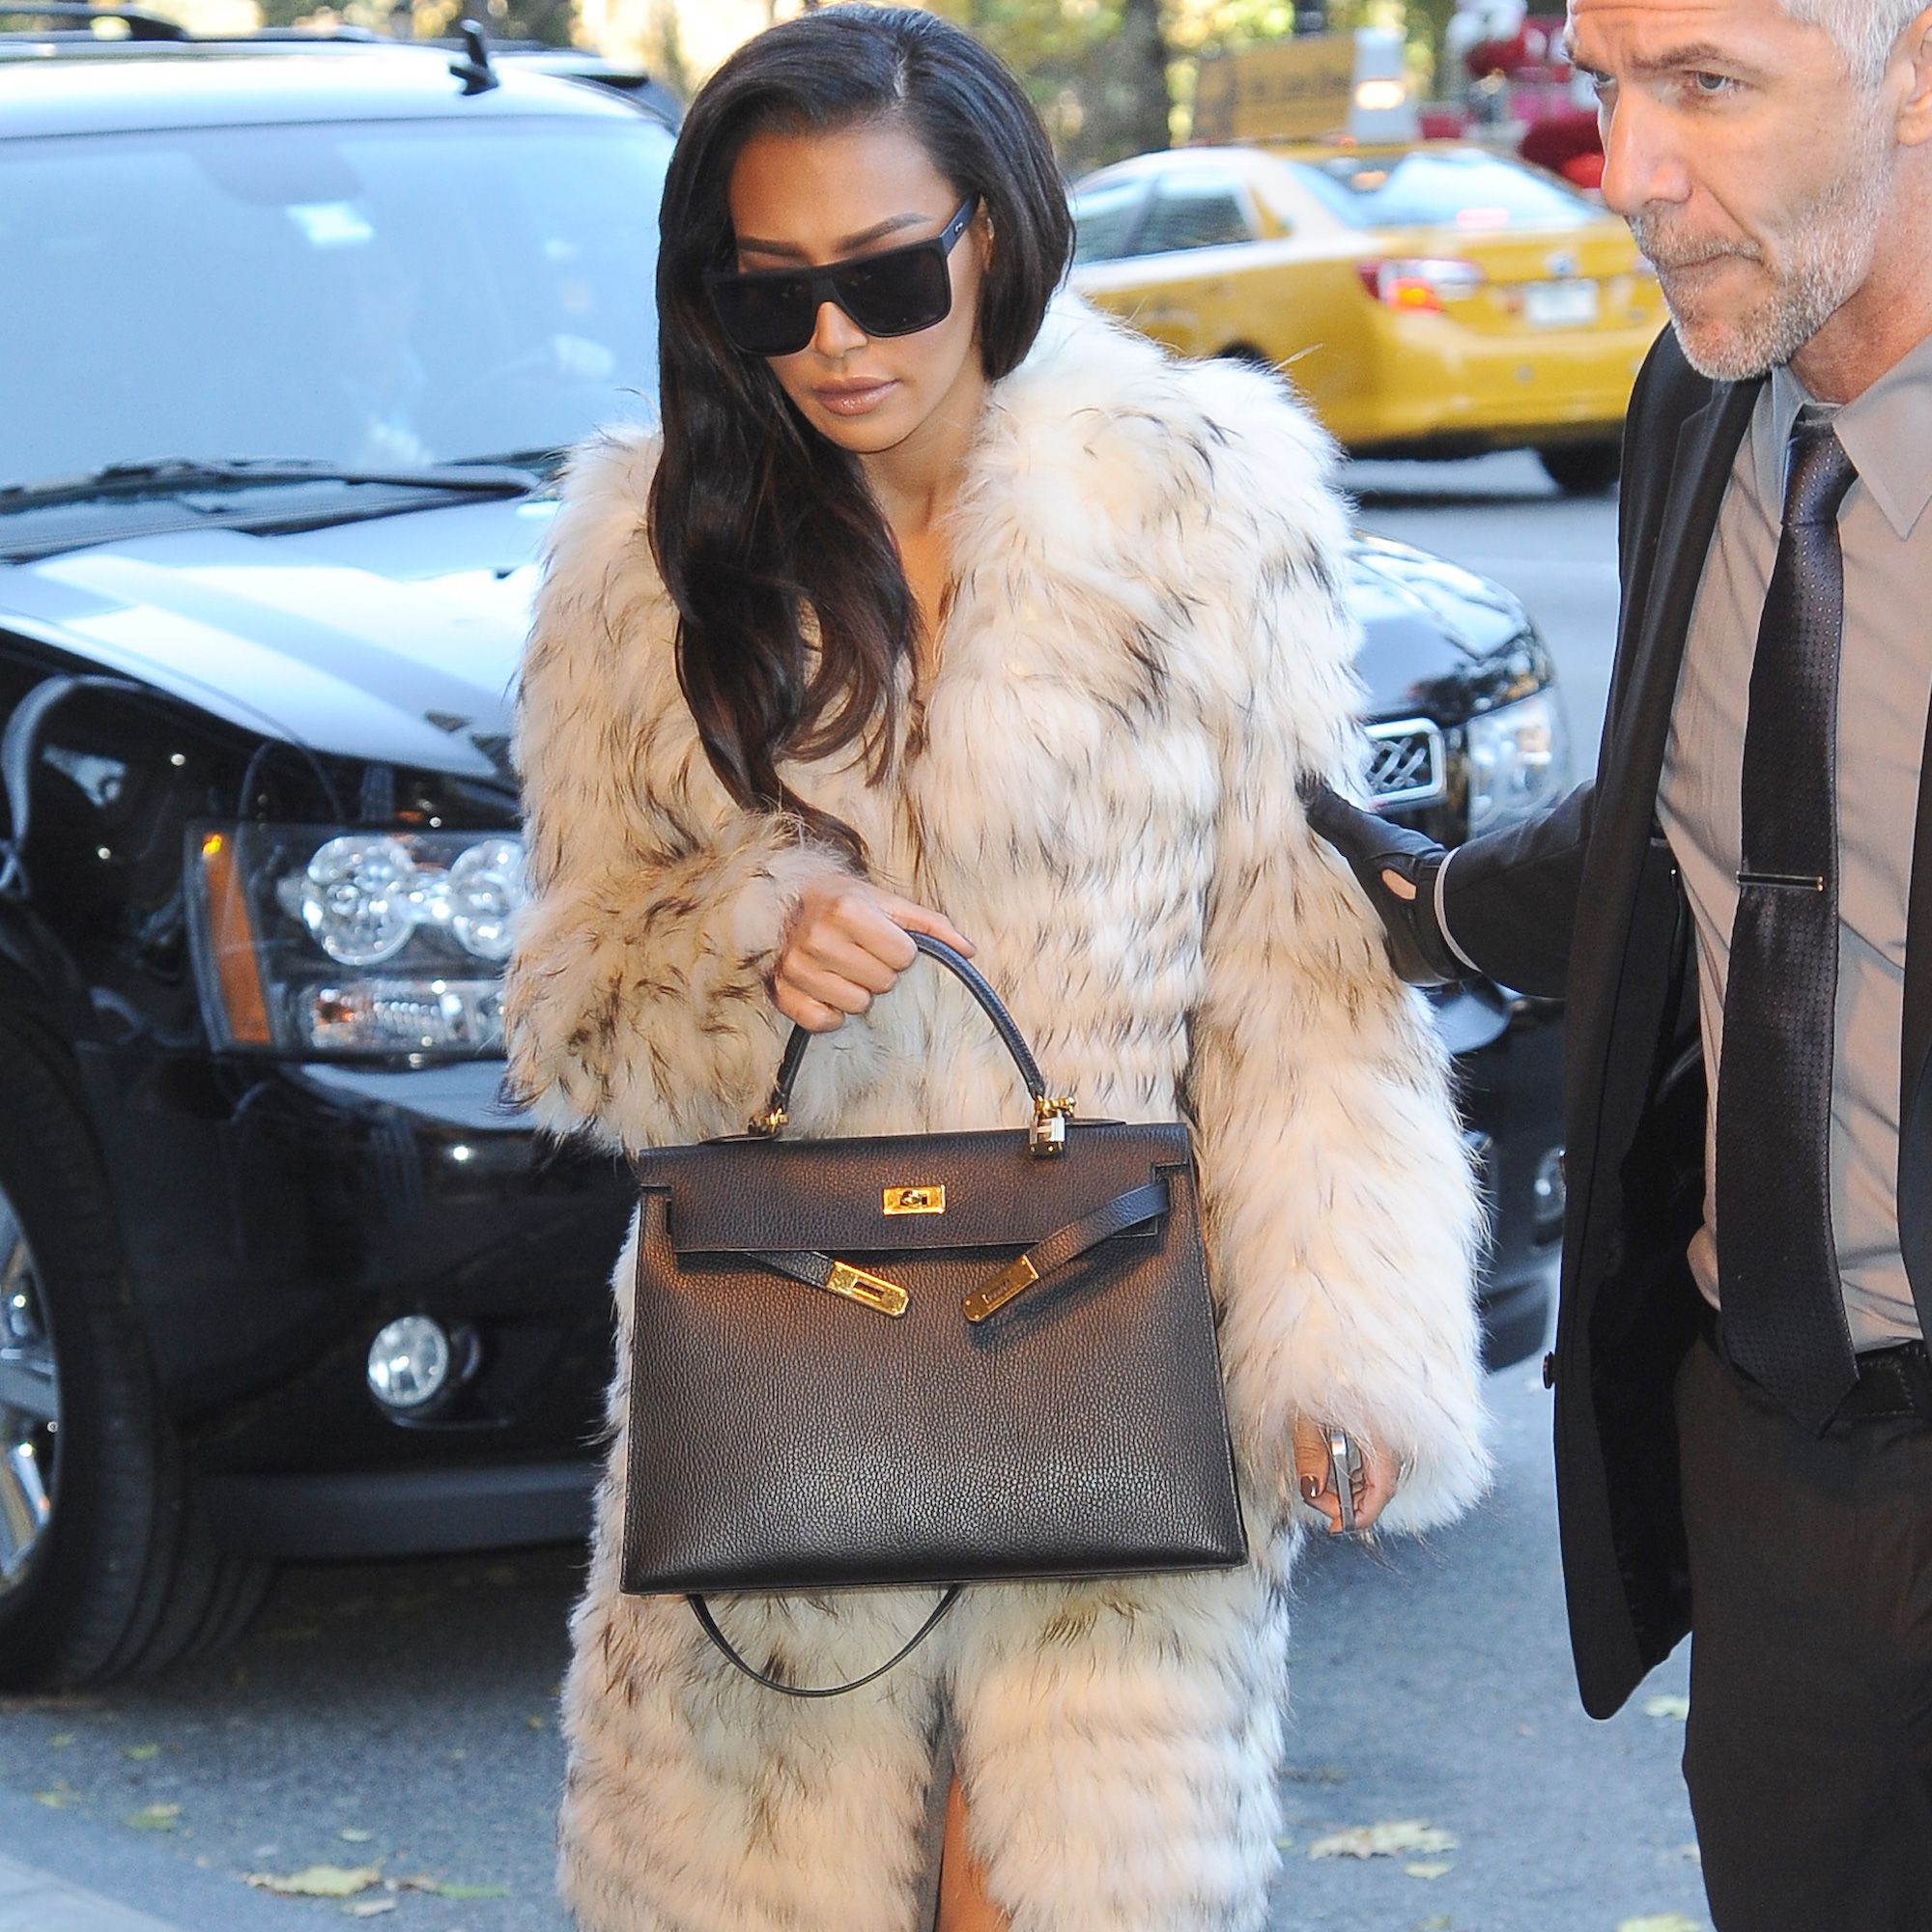 Naya Rivera in Soho on Nov. 18, 2014 in New York City.